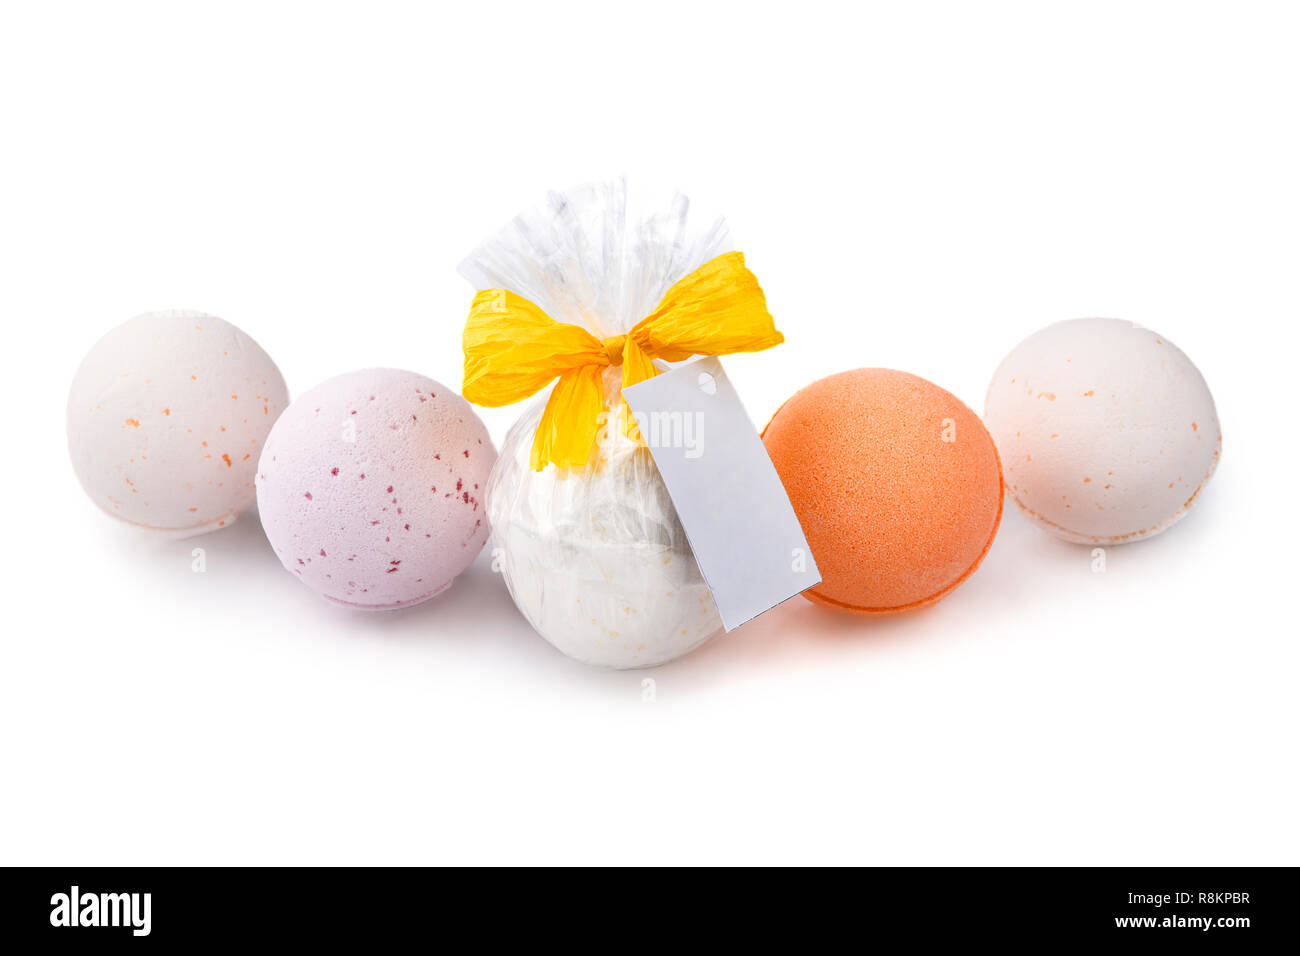 Aromatherapy colorful bath bombs gift wrapped isolated on white background - Stock Image